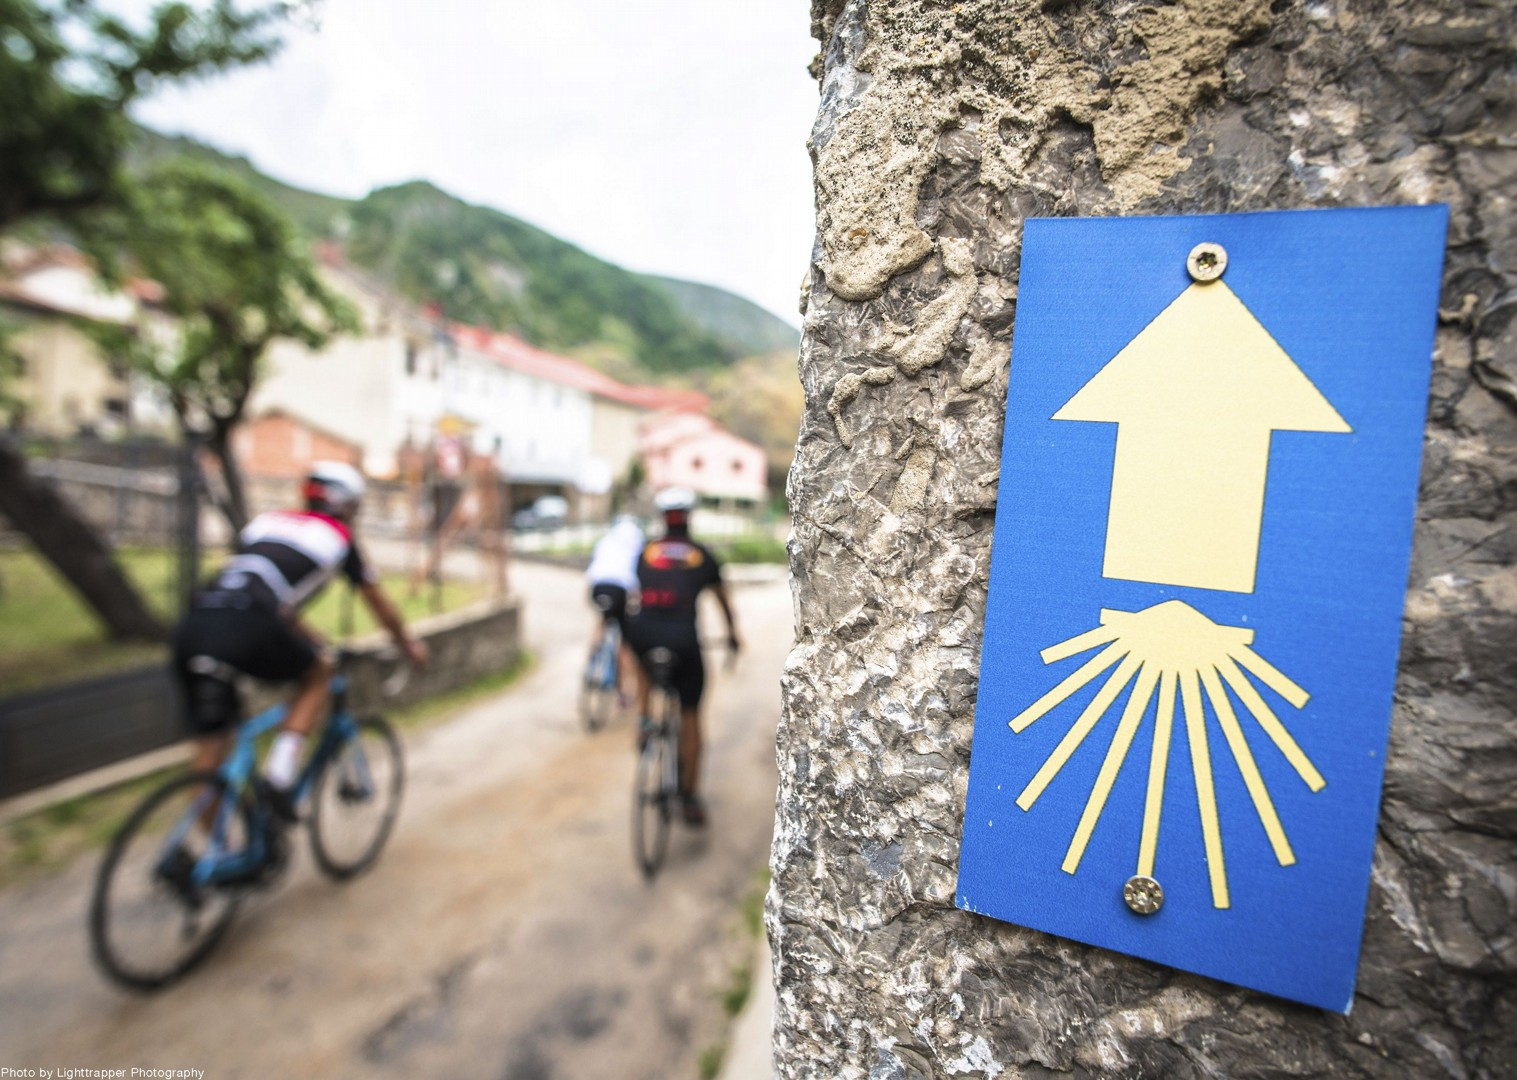 spanish-road-sign-cycle-journey-town-rock.jpg - Northern Spain - Road to Santiago - Guided Road Cycling Holiday - Road Cycling